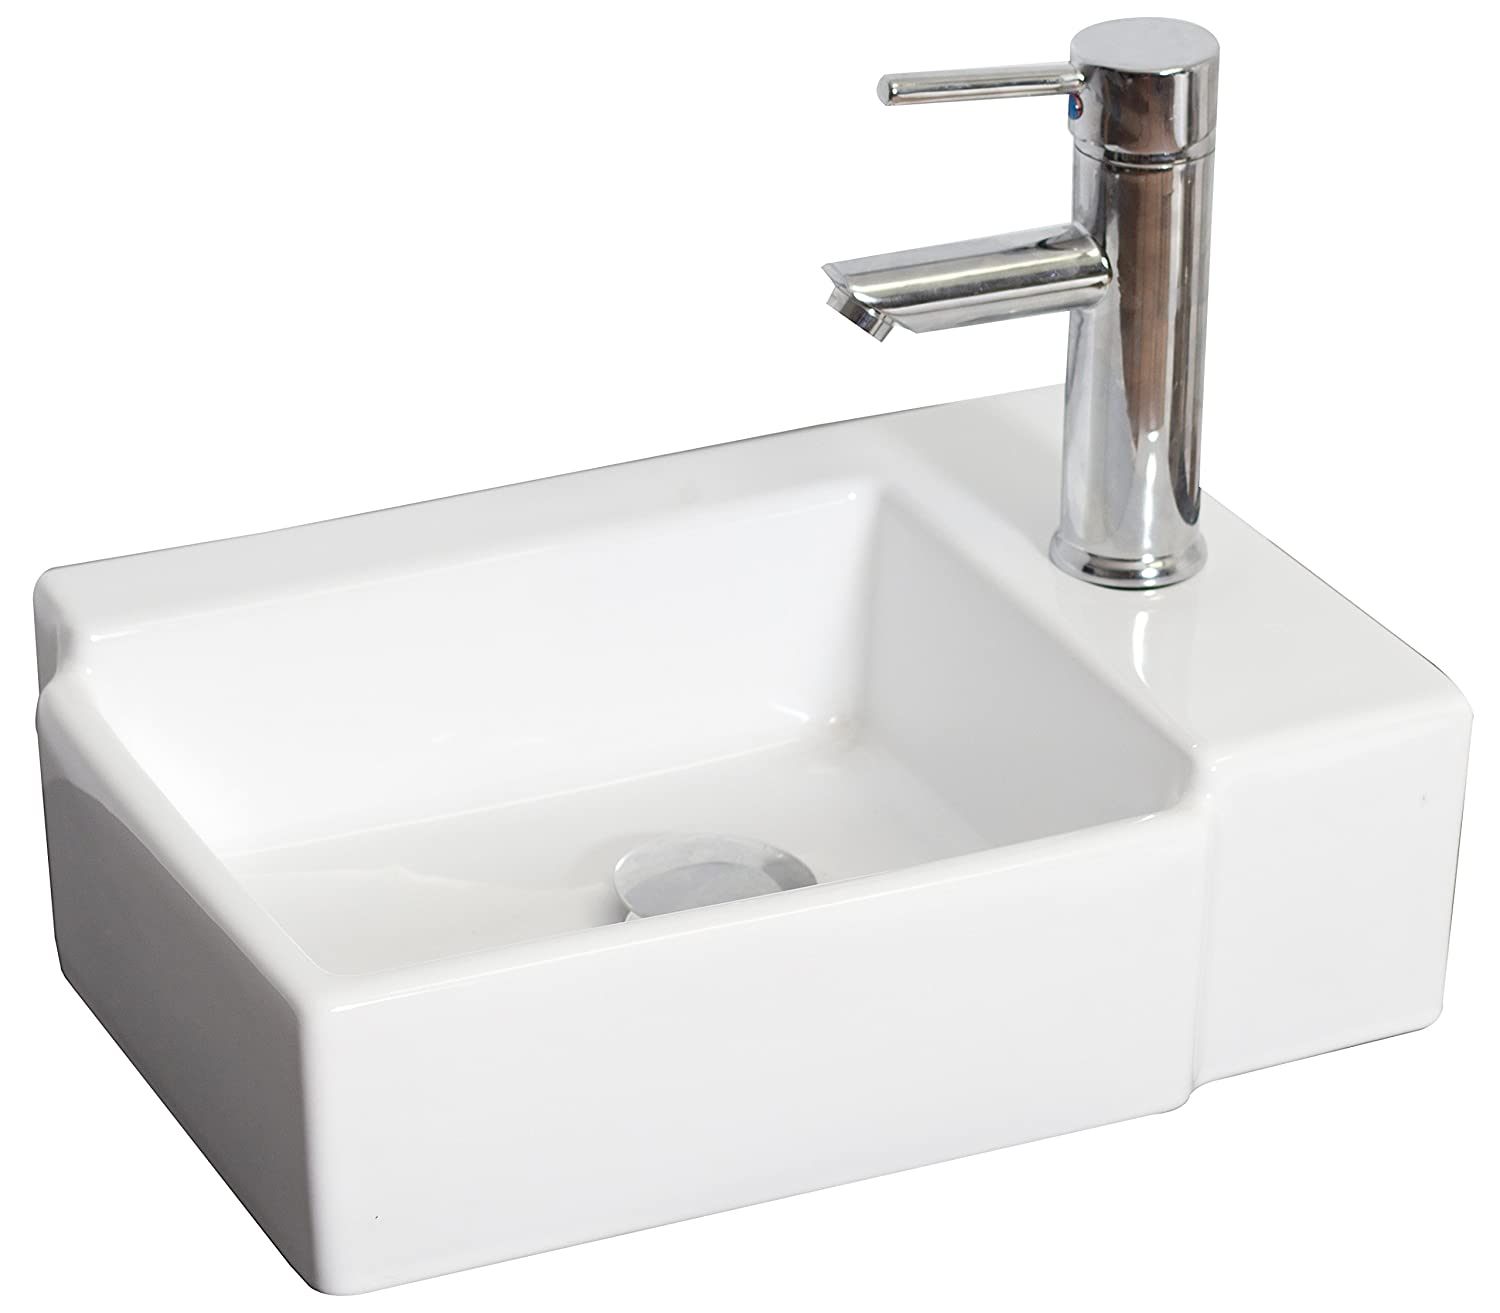 American Imaginations AI-7-1307 Wall Mount Rectangle Vessel for Single Hole Faucet, 16.25-Inch x 12-Inch, White IMG Imports Inc.